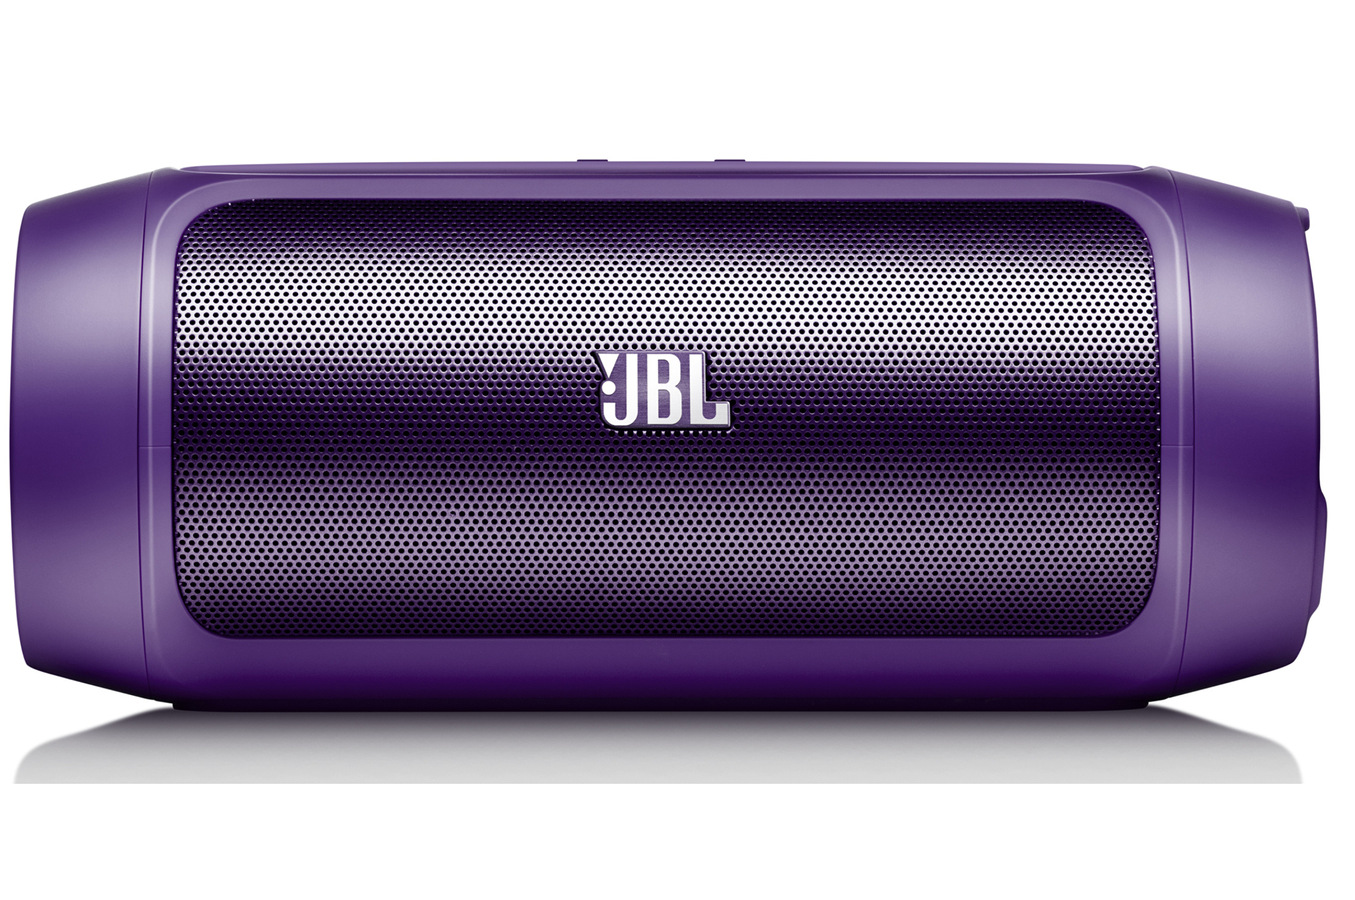 enceinte bluetooth sans fil jbl charge 2 violet 4071280 darty. Black Bedroom Furniture Sets. Home Design Ideas